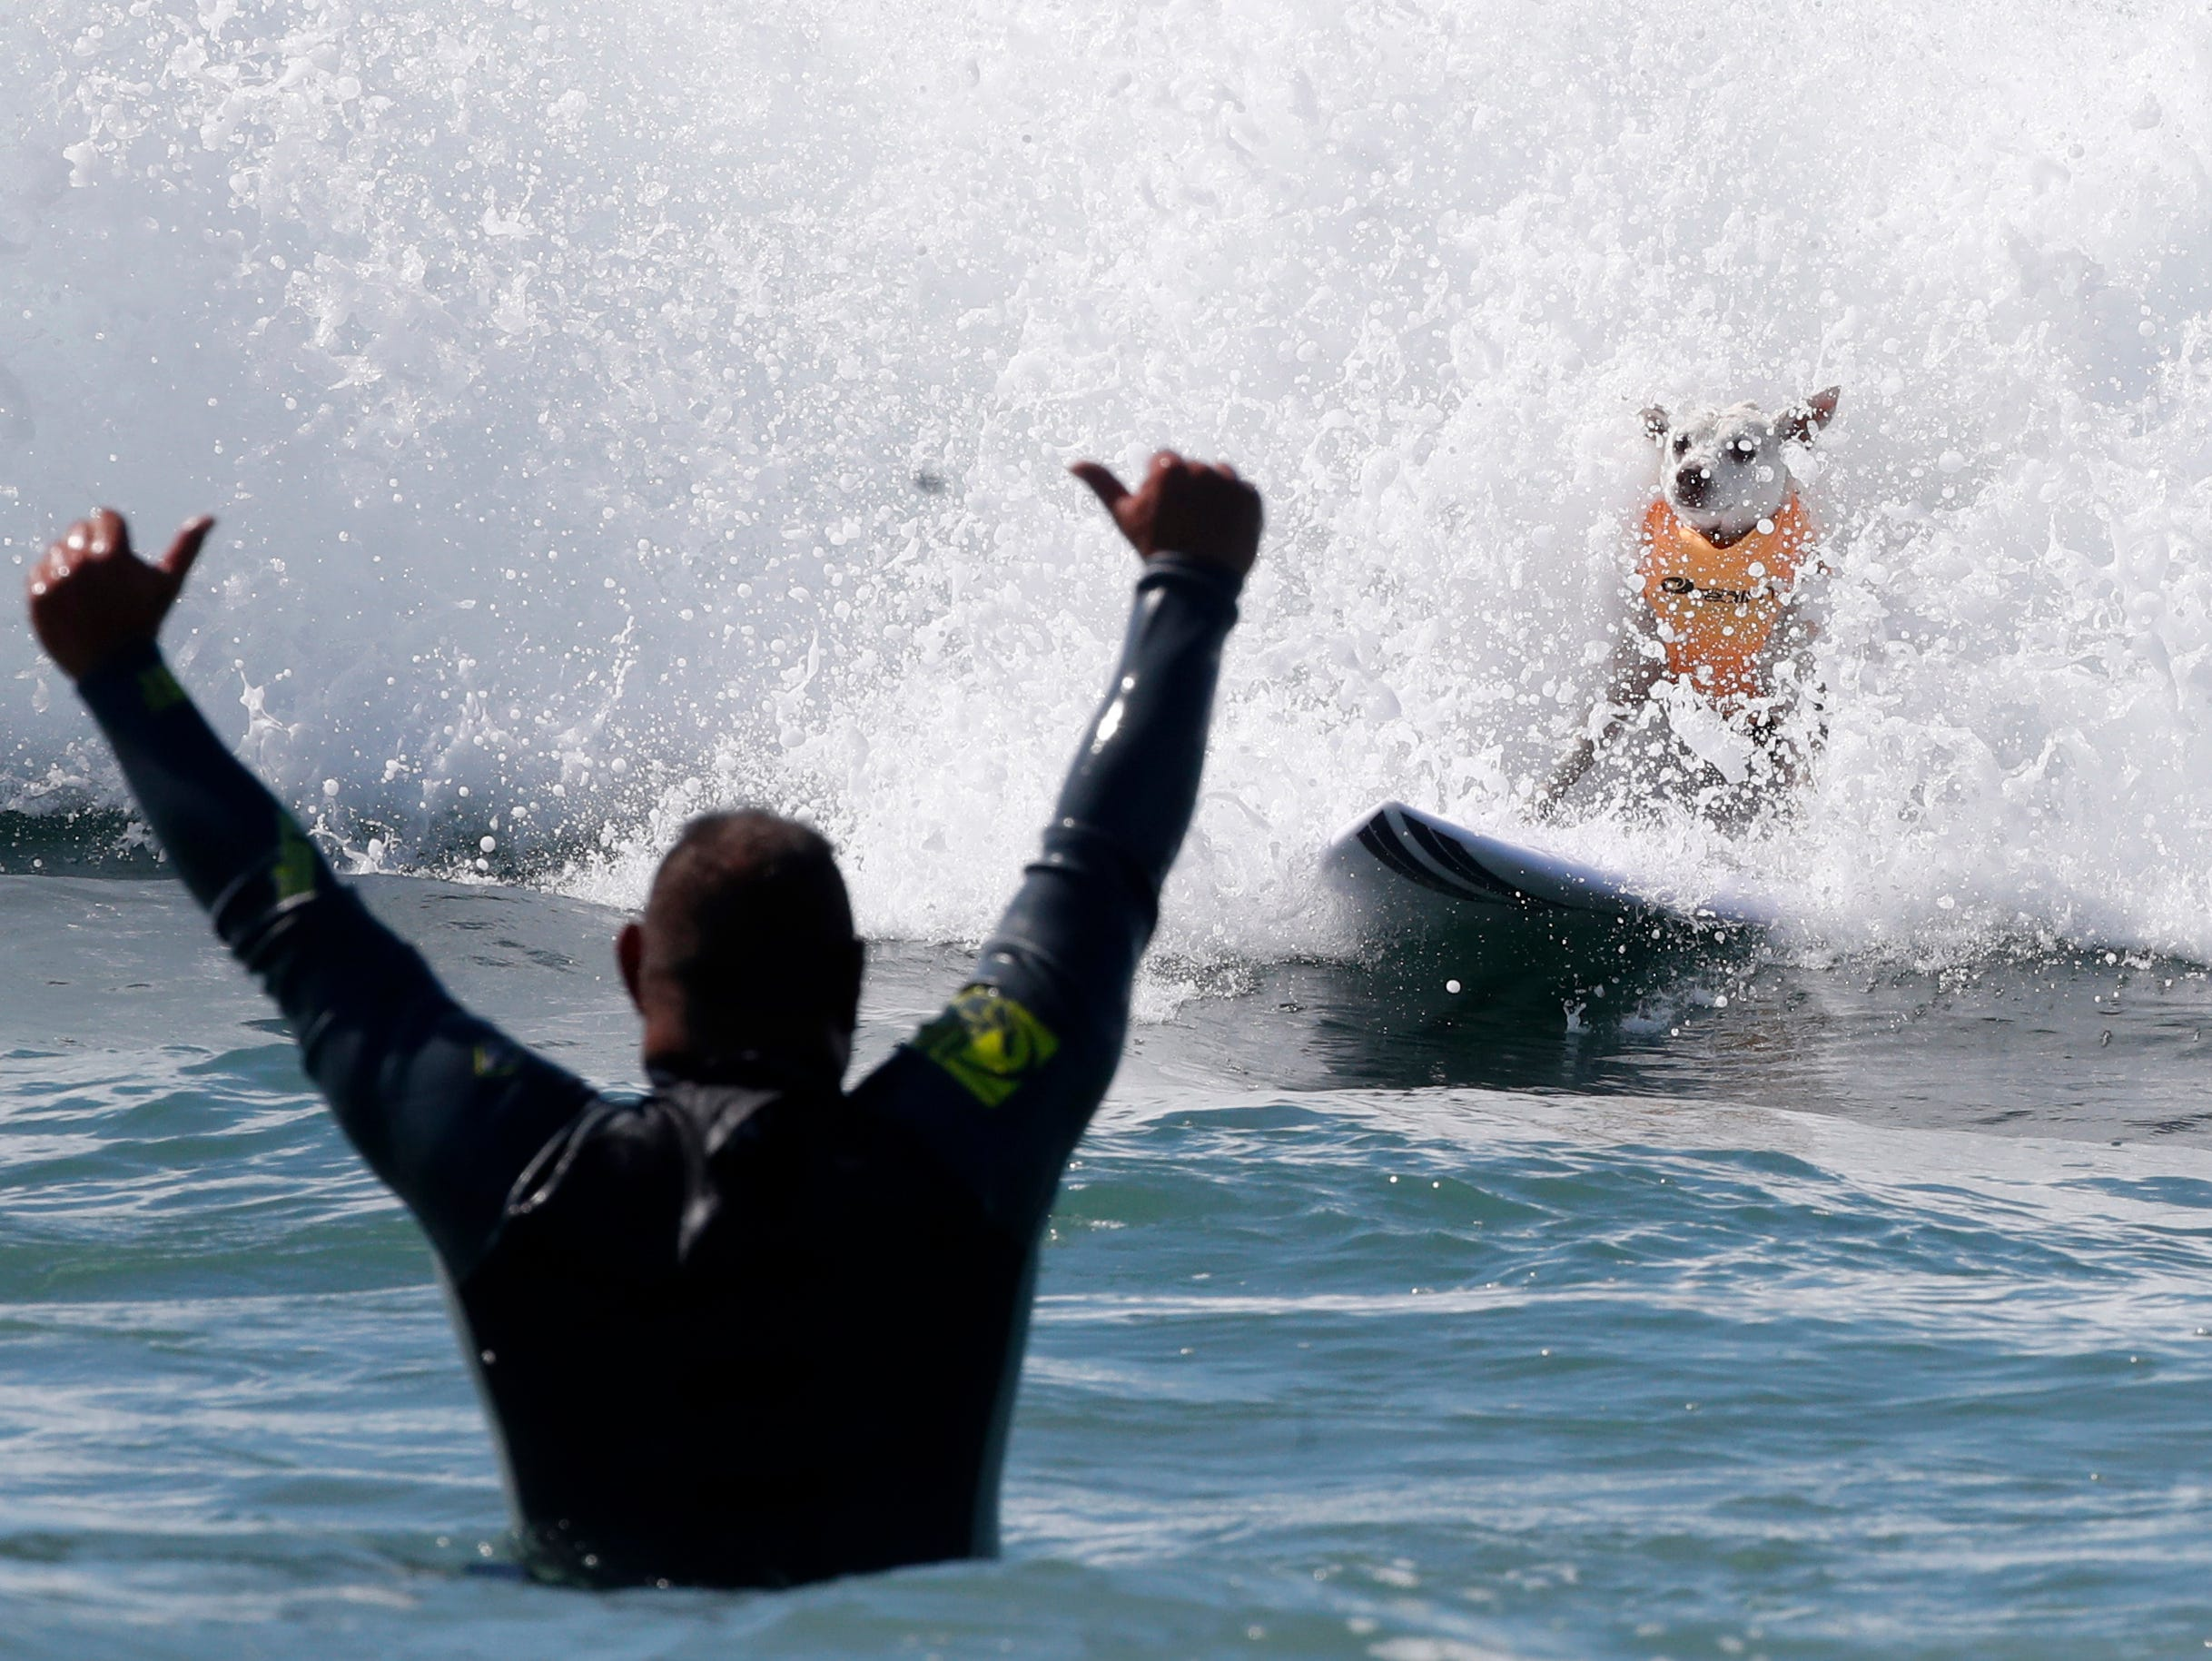 A person celebrates as a surf dog successfully rides a wave.